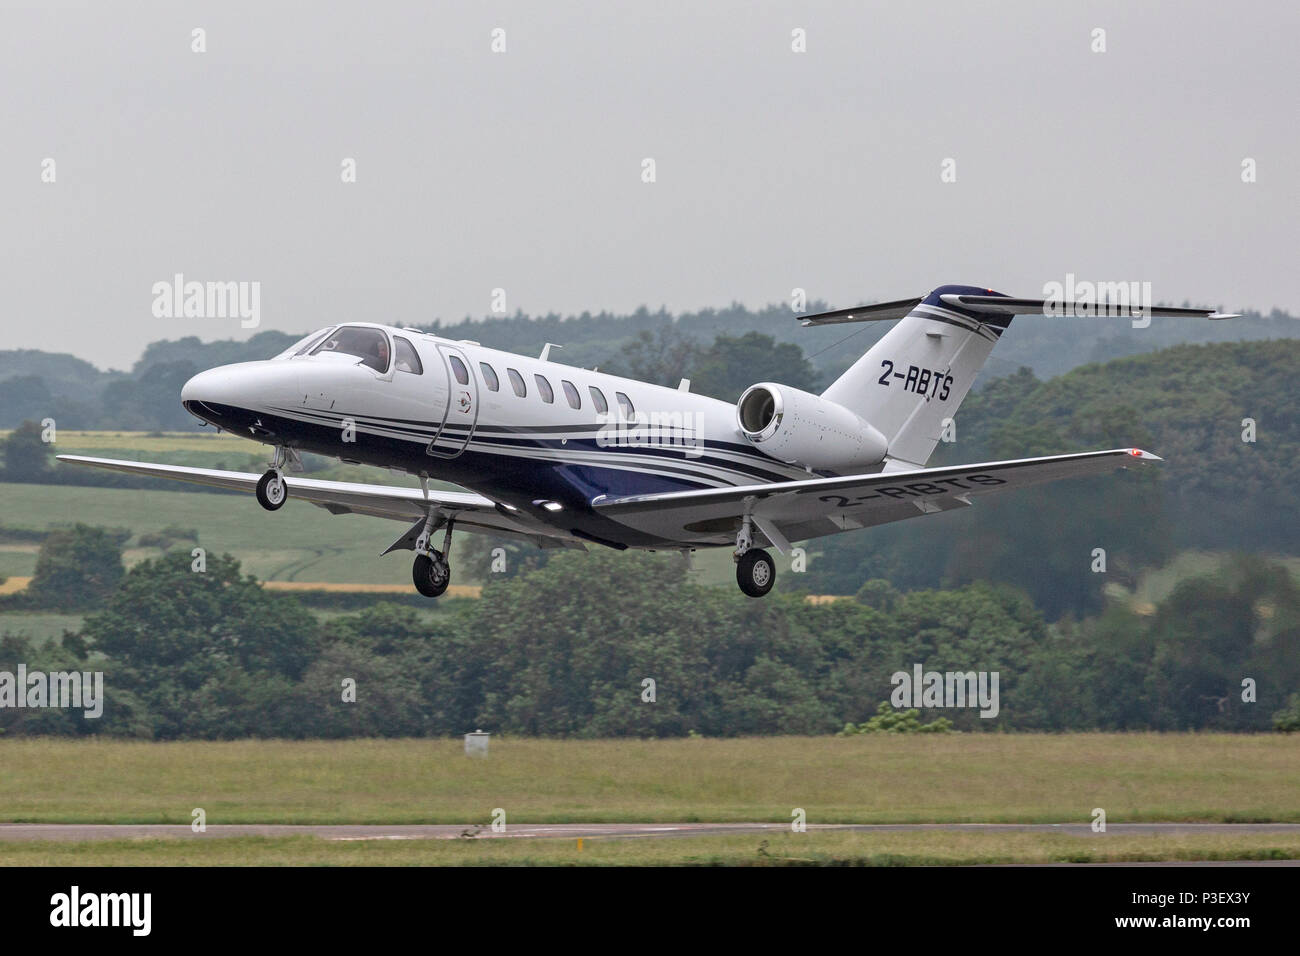 A Cessna 525B Citation Jet CJ3, registered in Guernsey as 2-RBTS, taking off from London Luton airport. A corporate business jet aircraft. - Stock Image